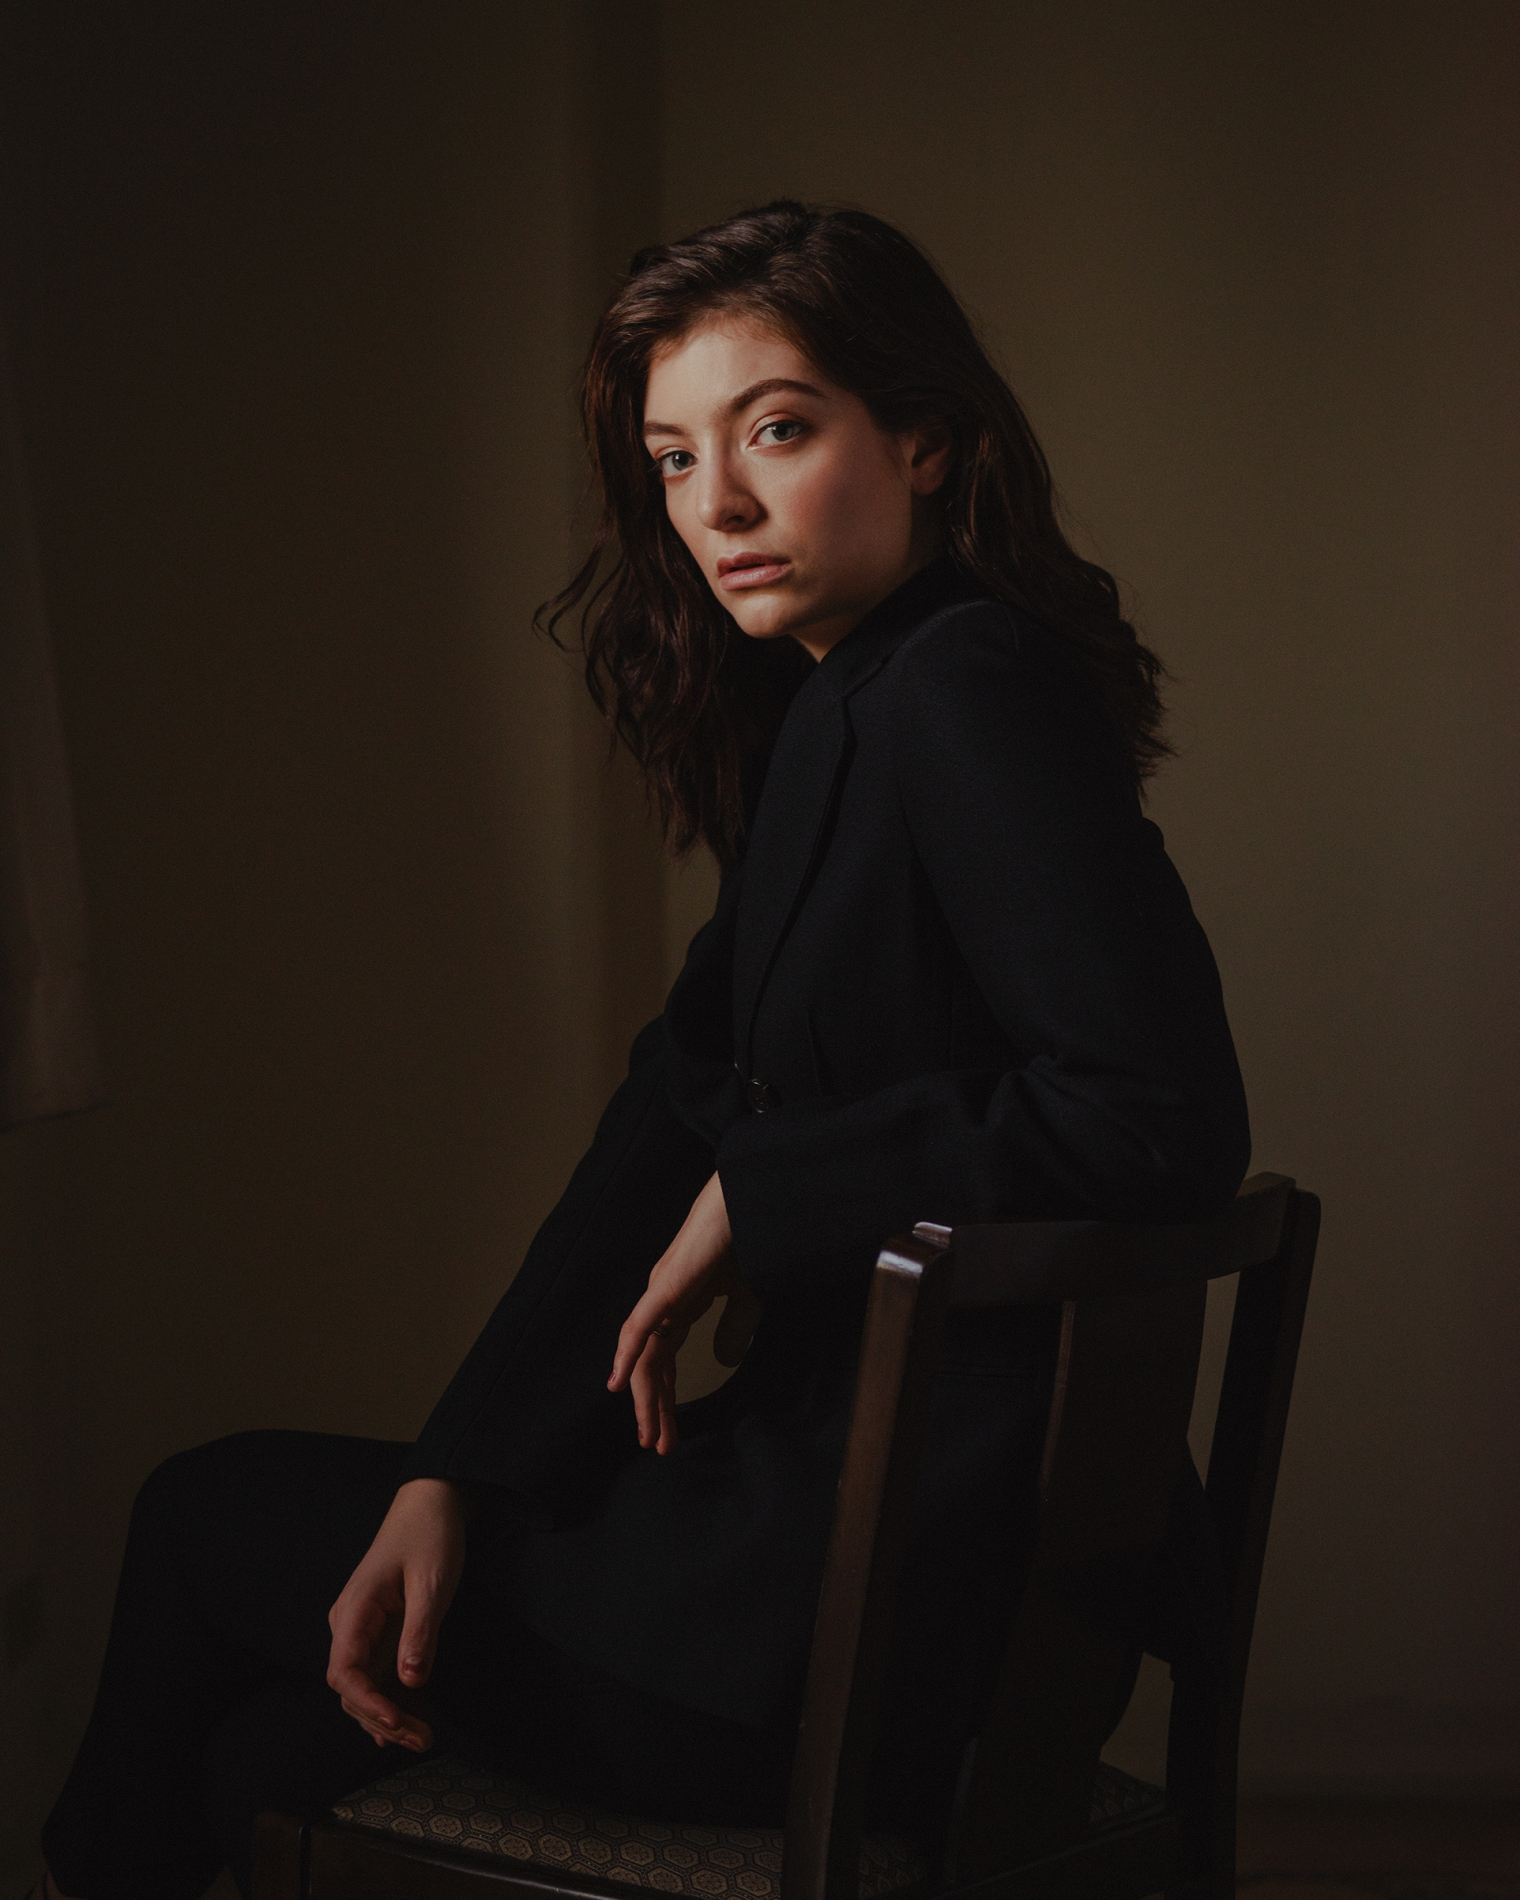 Mark Mahaney for TIME. Lorde photographed at the Chateau Marmont Hotel in Los Angeles on May 18, 2017.